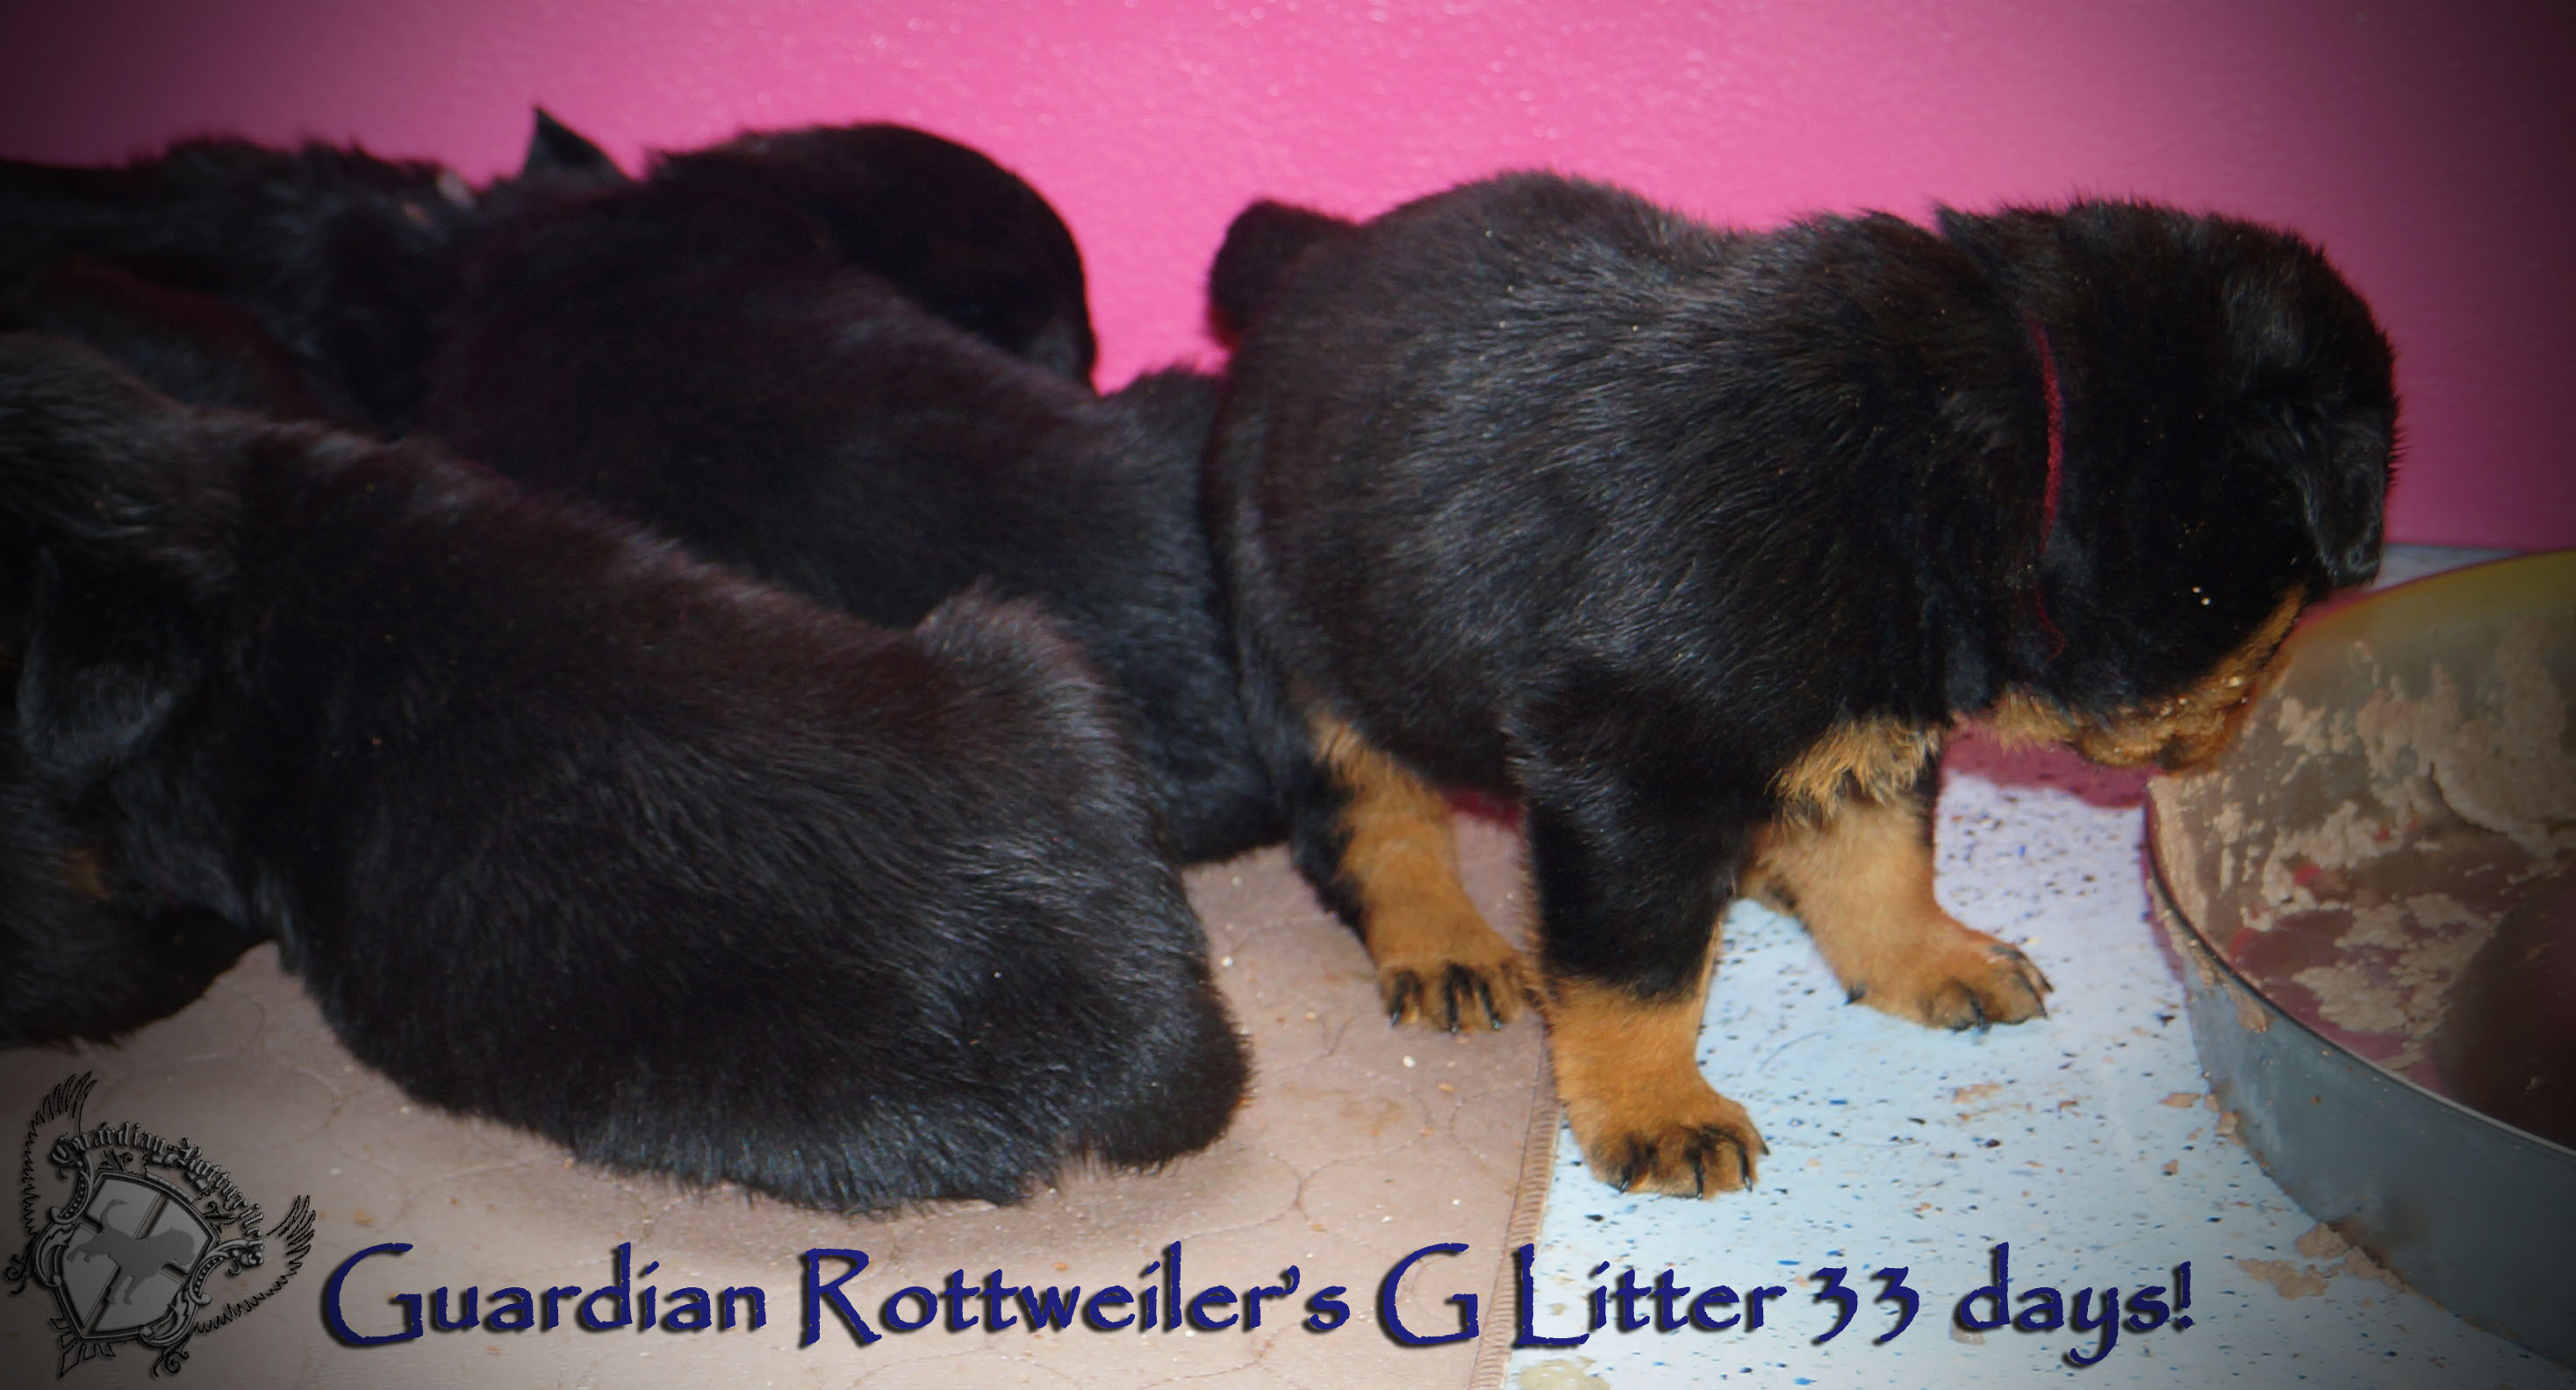 Best Rottweiler Chubby Adorable Dog - glitter33days06  Image_19649  .jpg